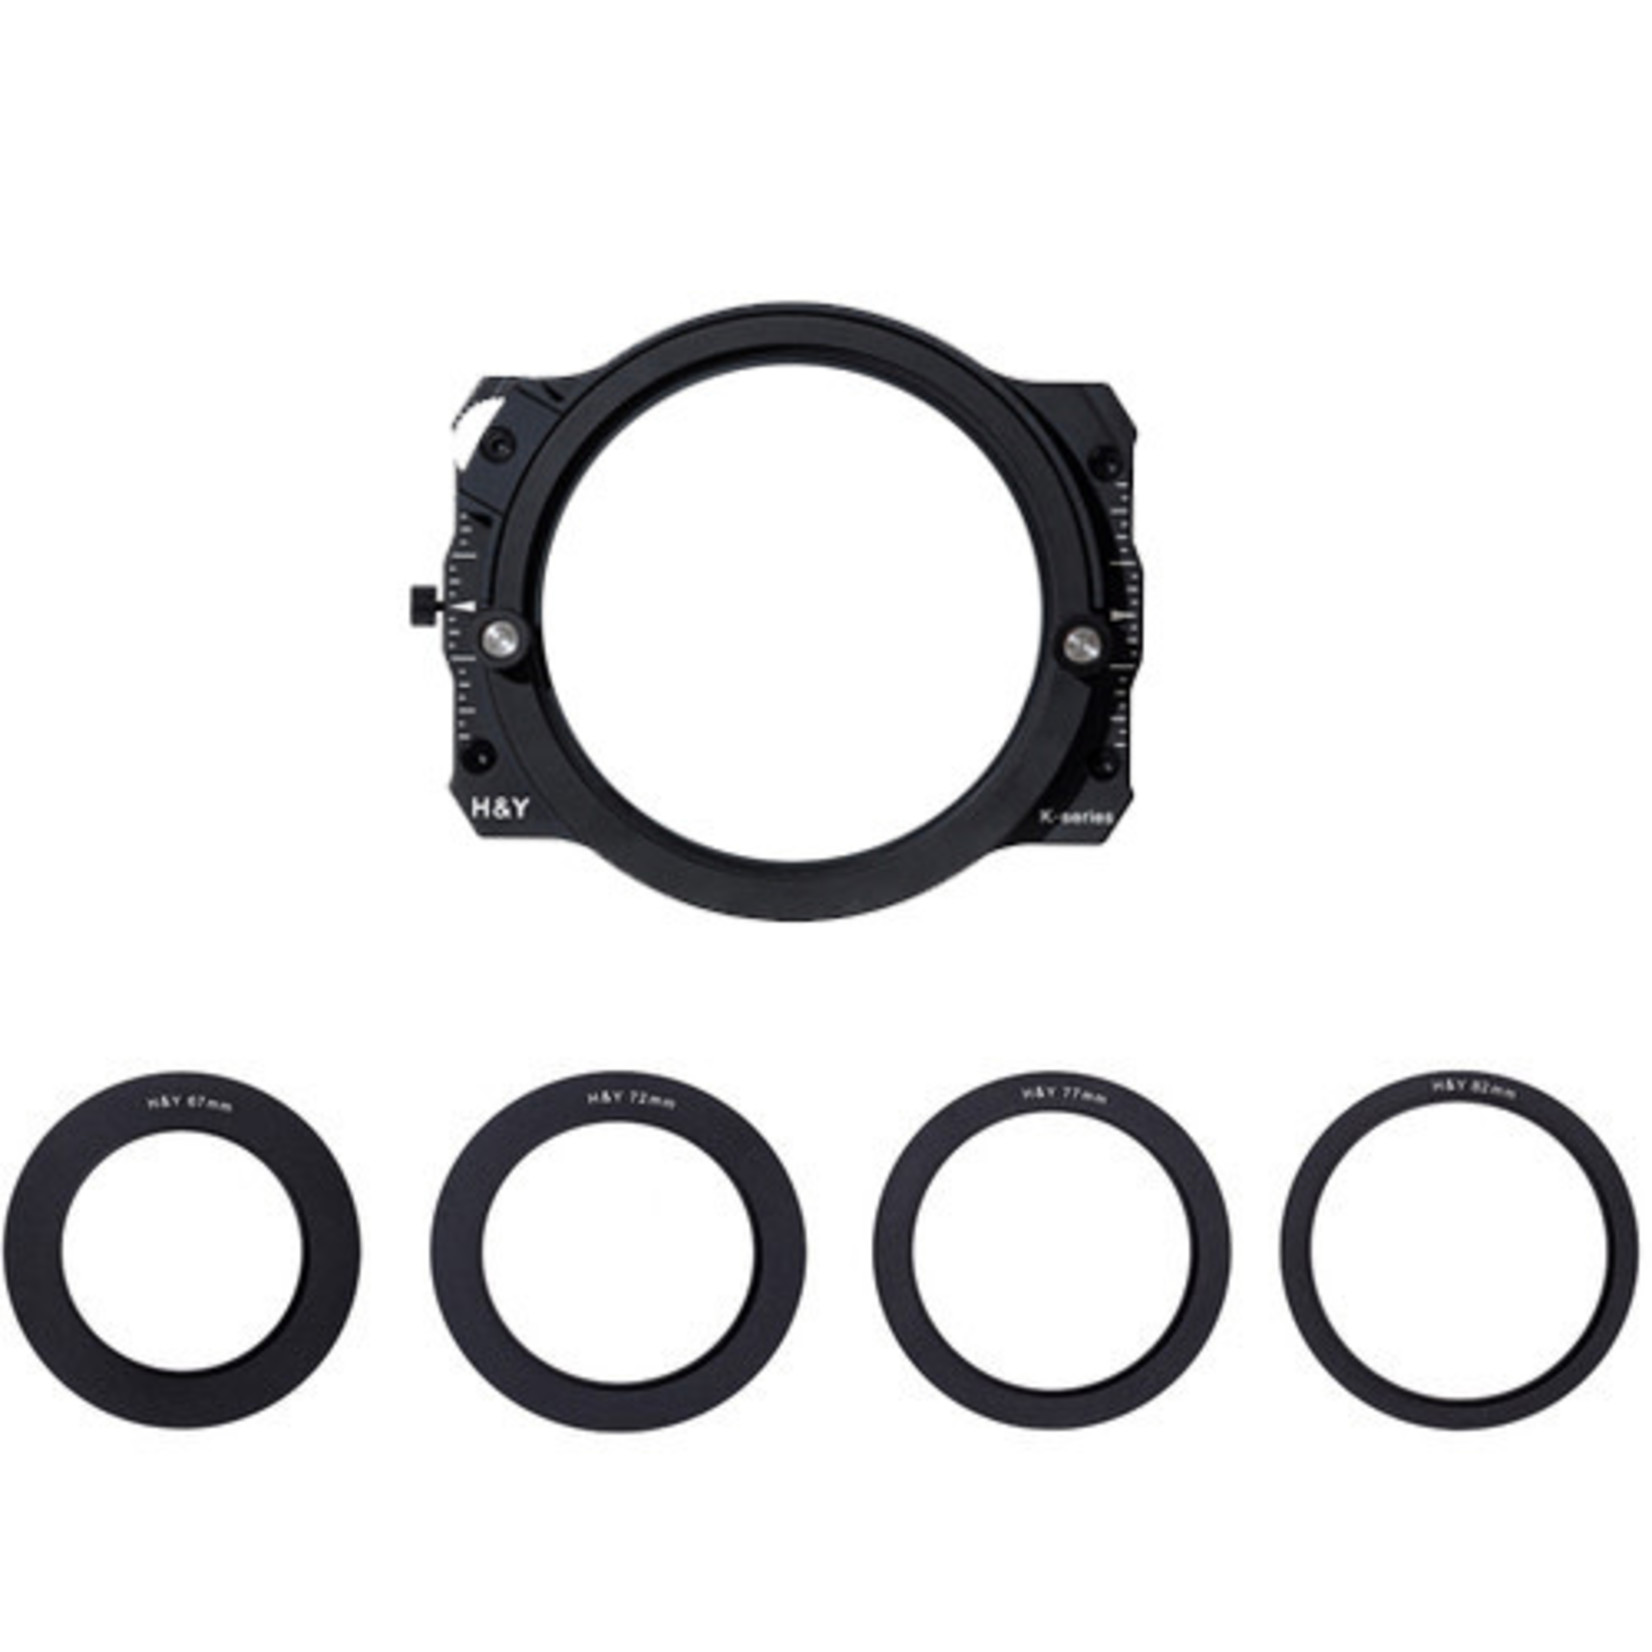 H&Y Square Filter Holder with adapter rings